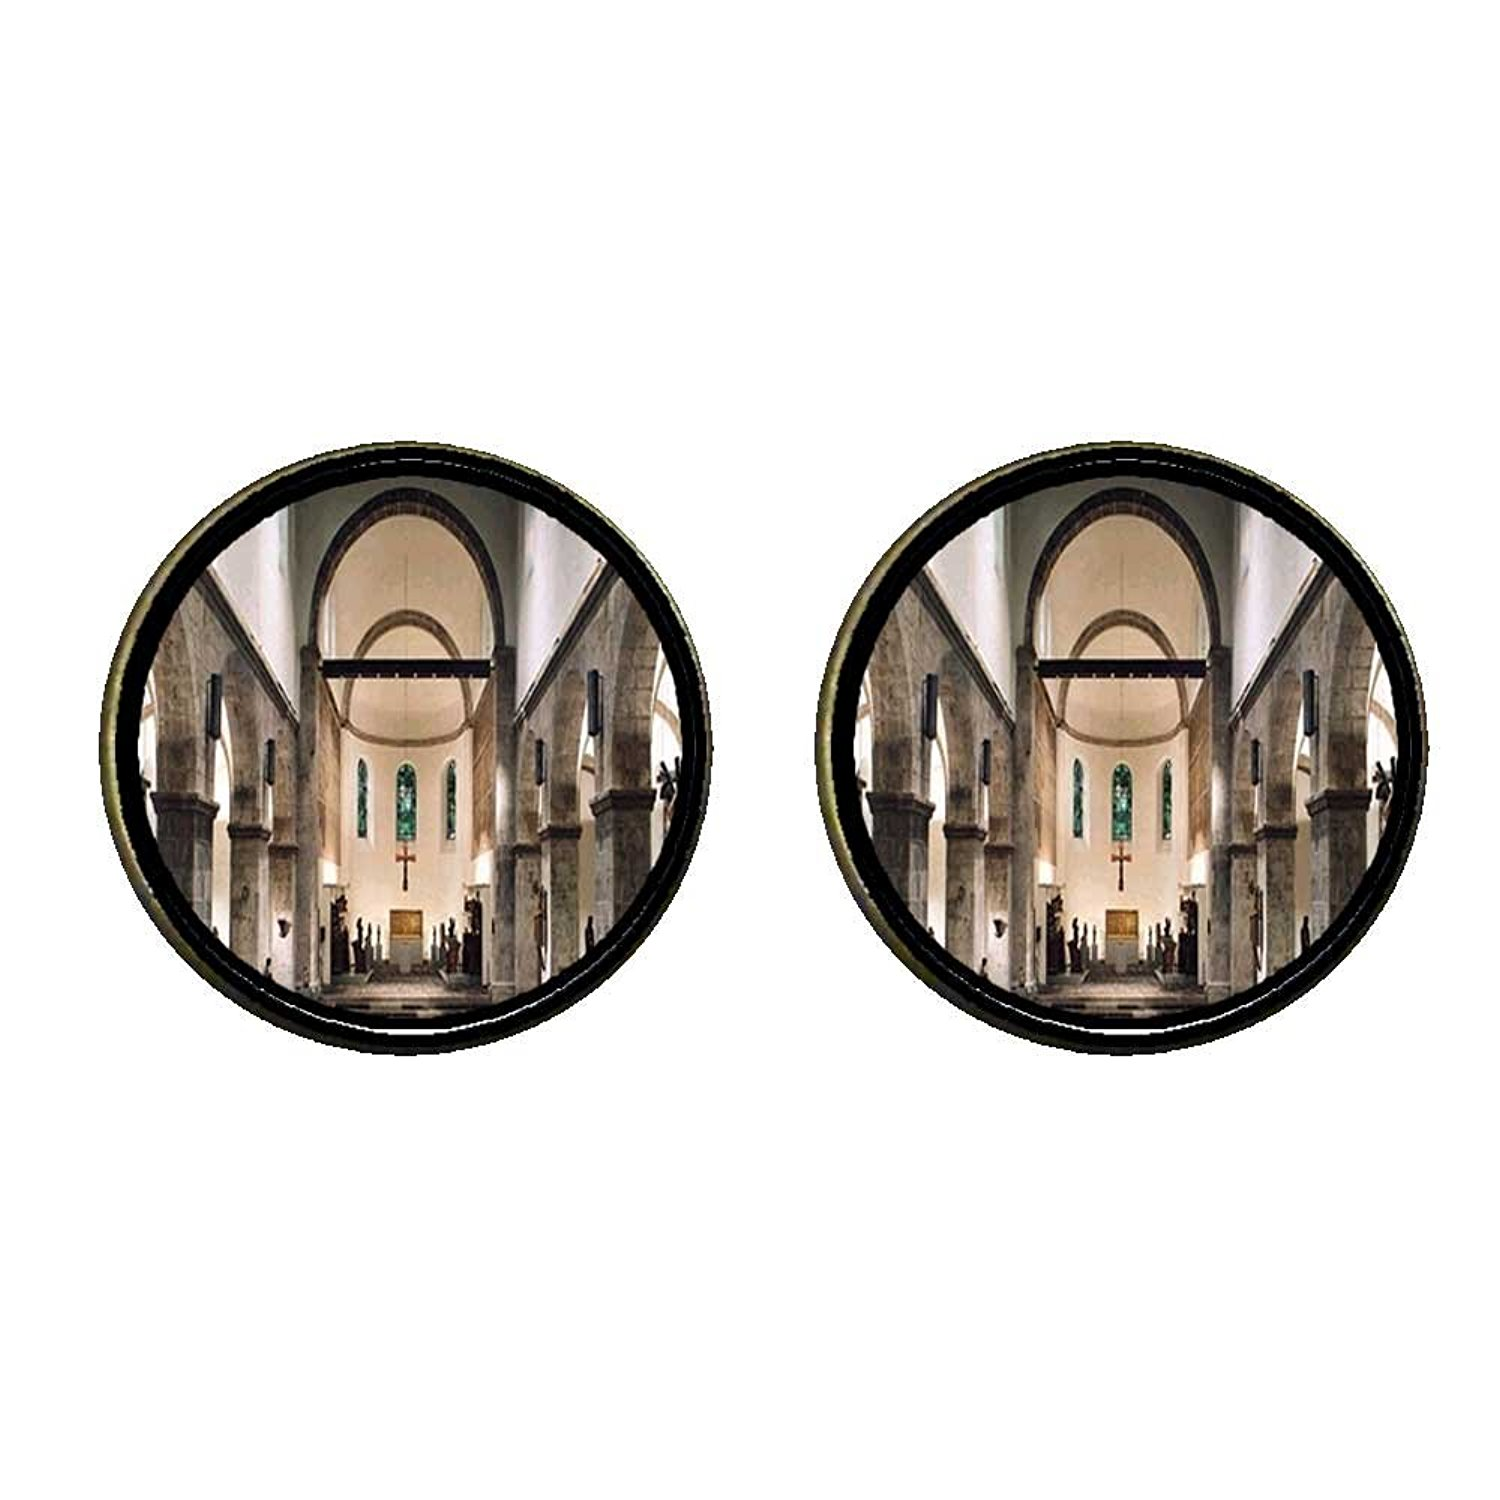 GiftJewelryShop Bronze Retro Style st. cecilia church and museum cologne Photo Clip On Earrings #14